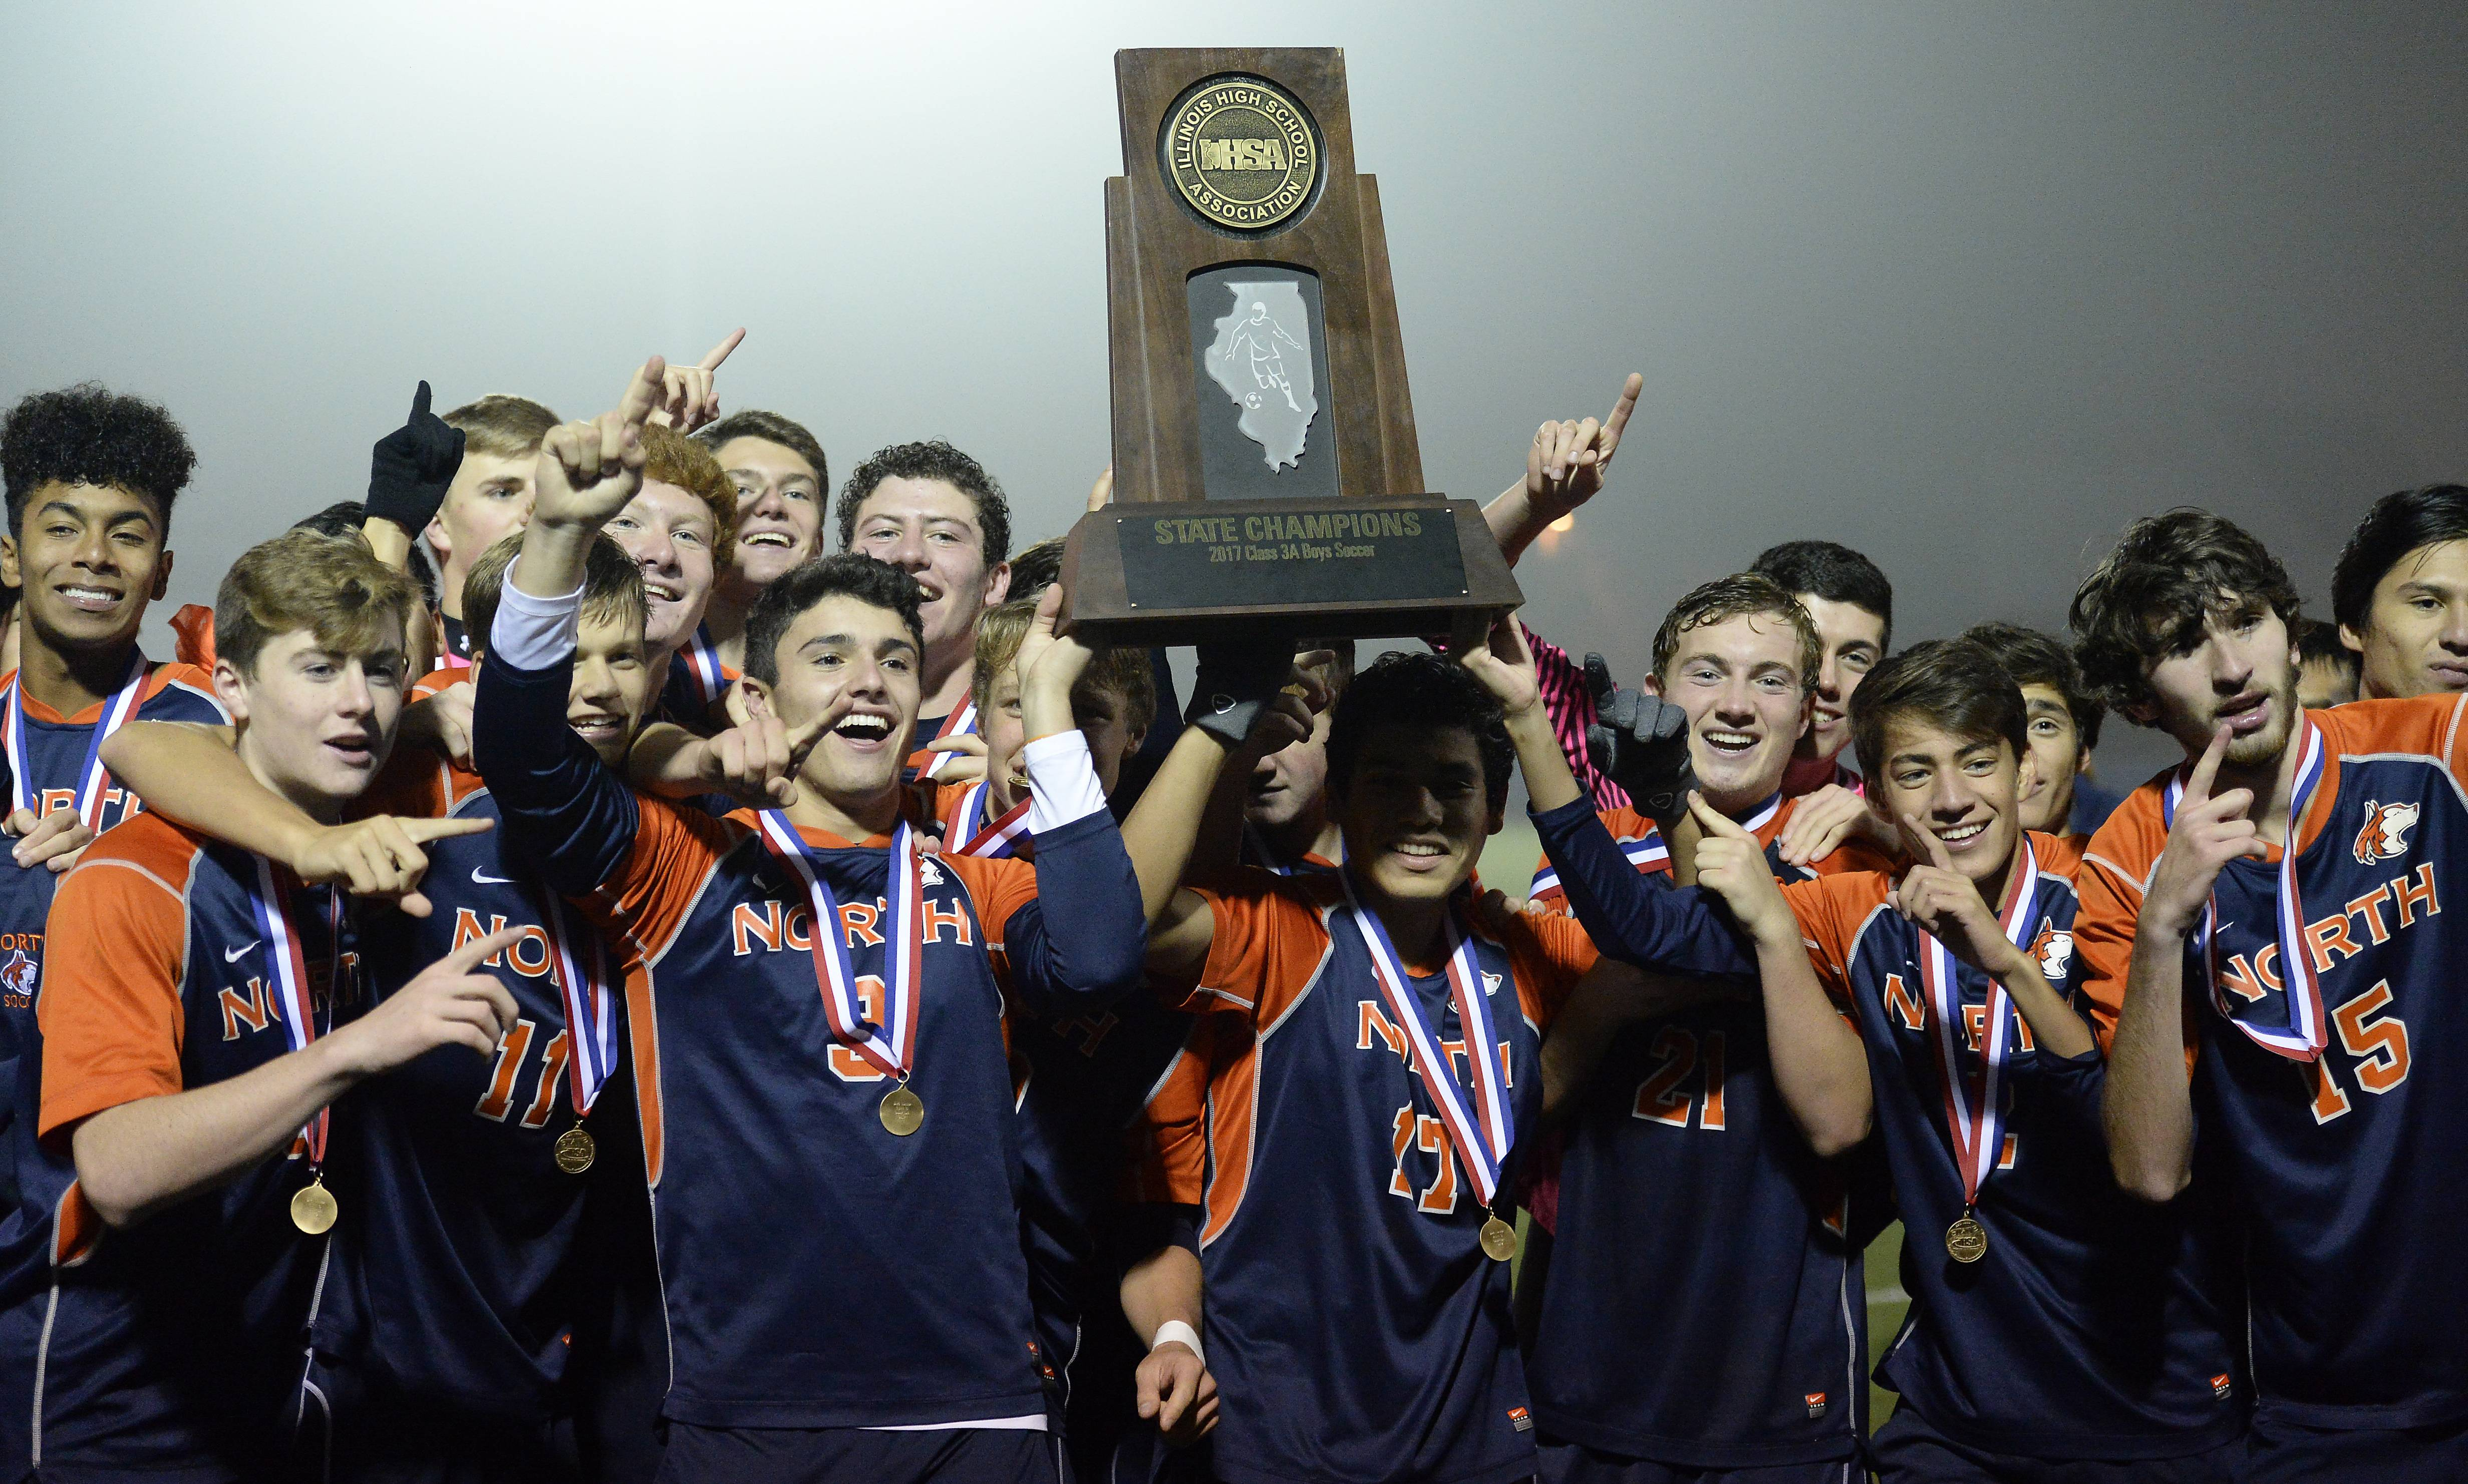 Naperville North's soccer team players hold up their first place trophy after beating Libertyville 1-0 in the state soccer championship game at Hoffman Estates.